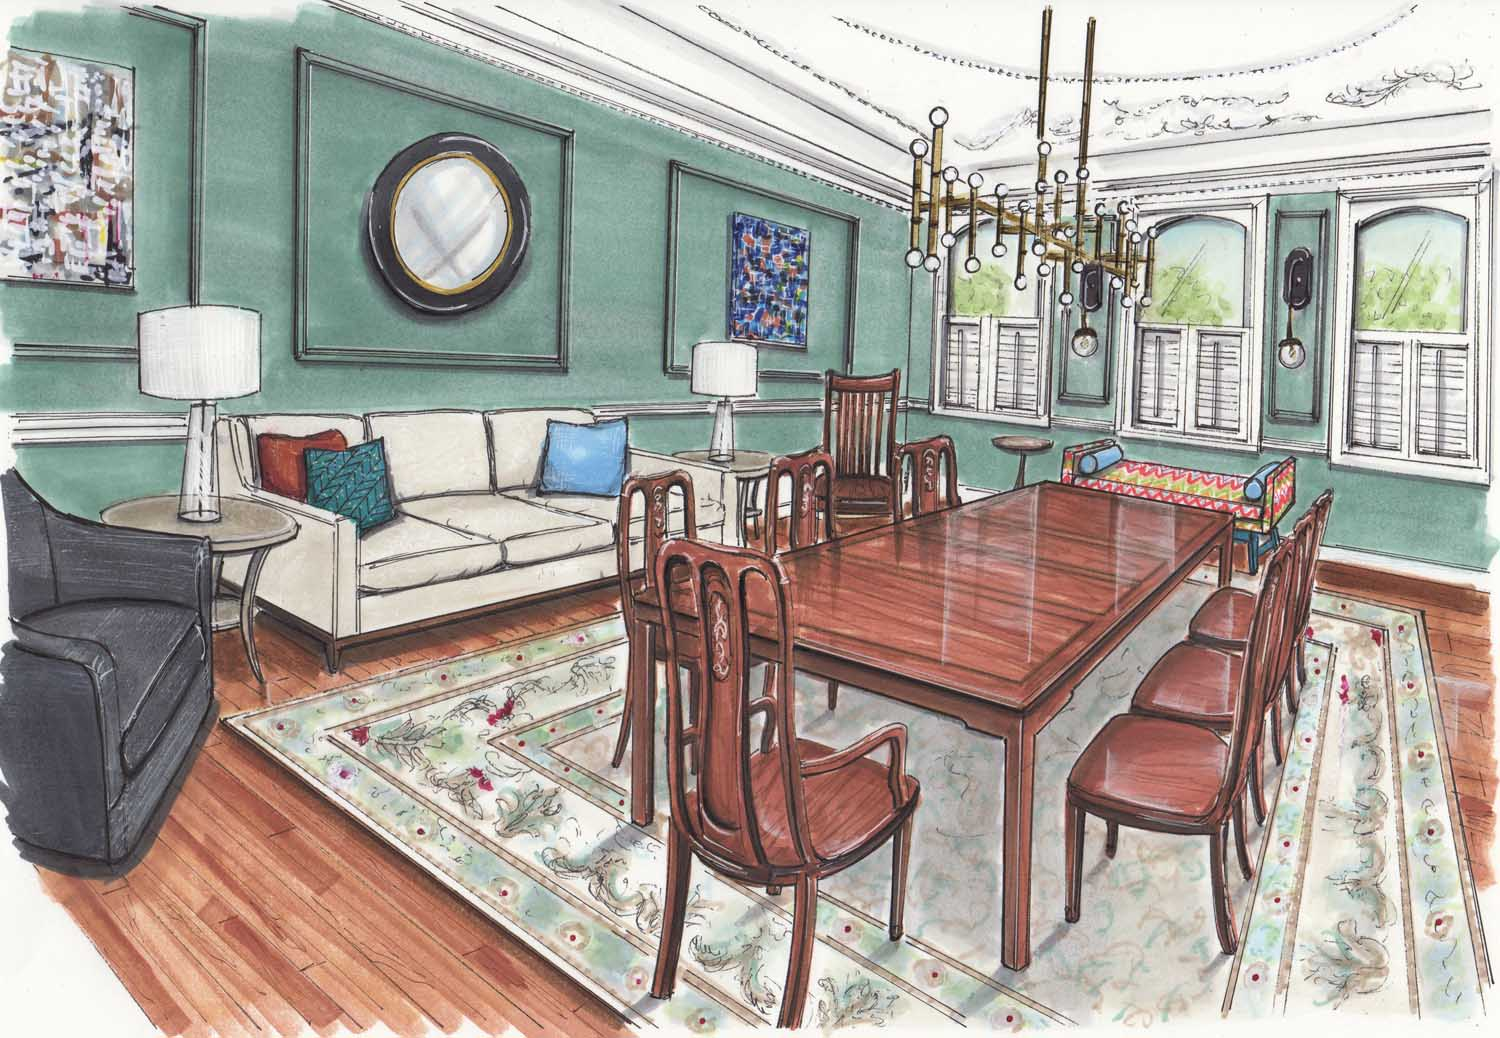 Baltimore Maryland Butchers Hill Dining Room Update Design Details Rendering – Designer Bestie April Force Pardoe Interiors.jpg